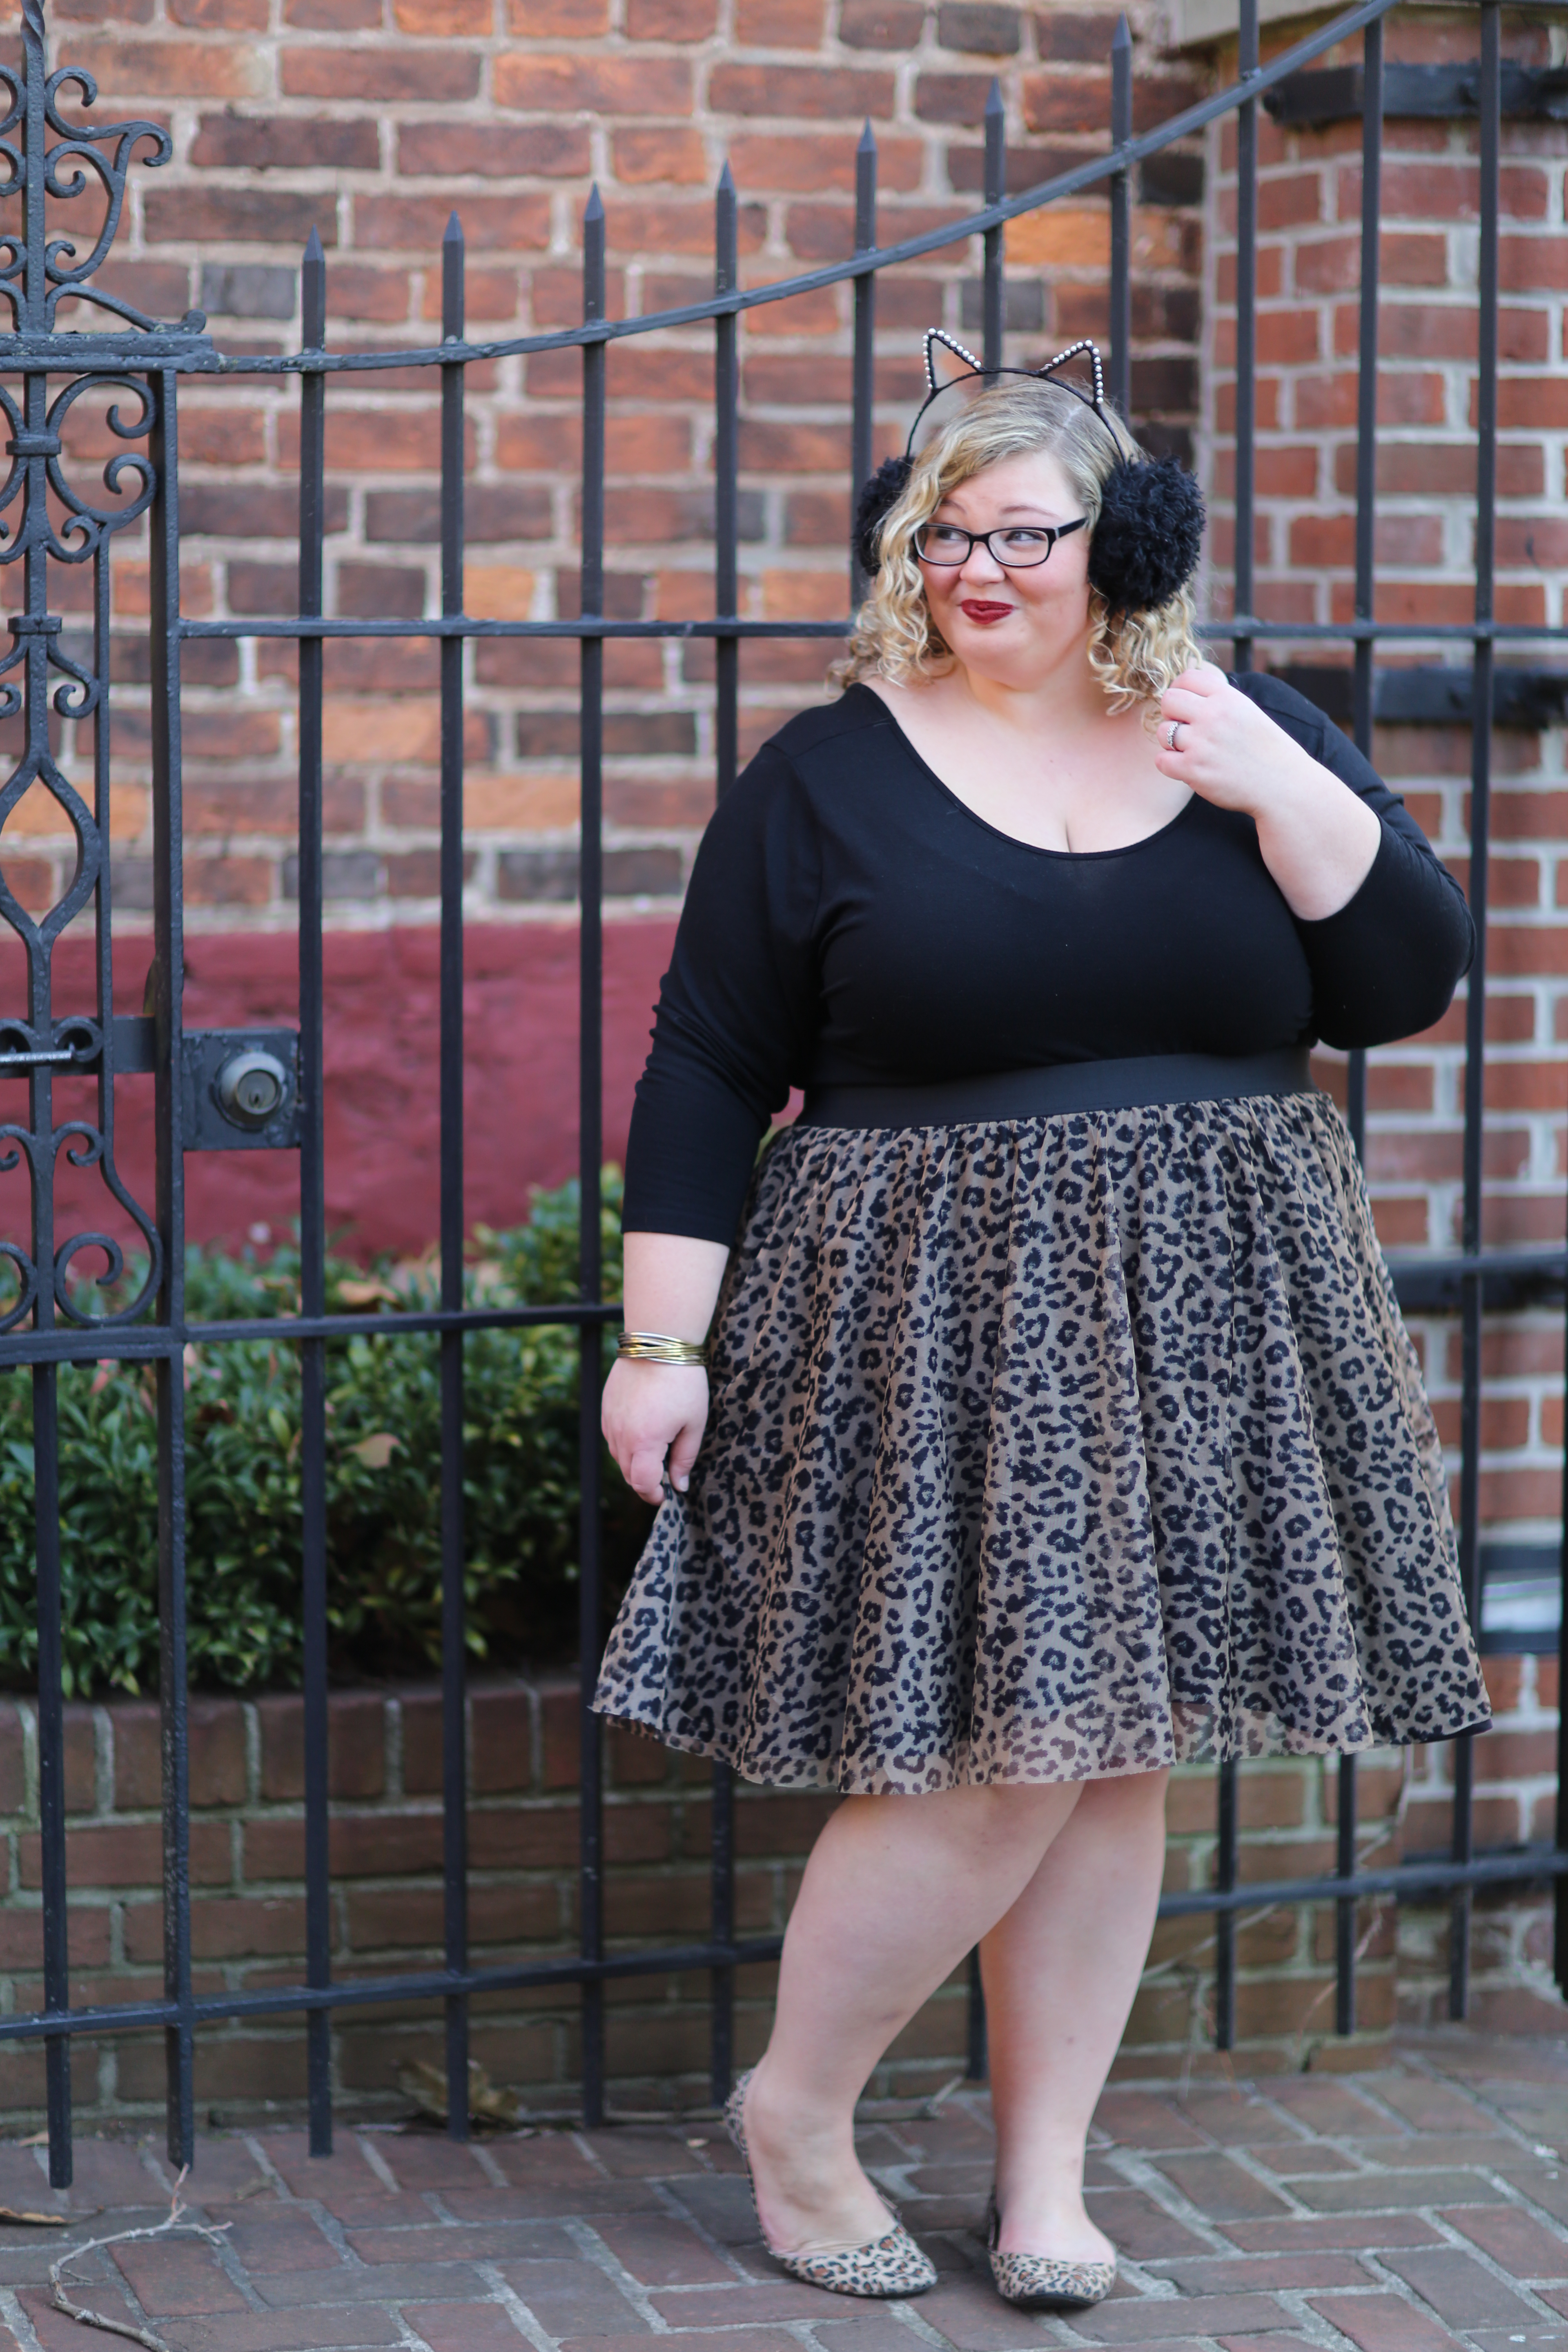 Plus size dating stories